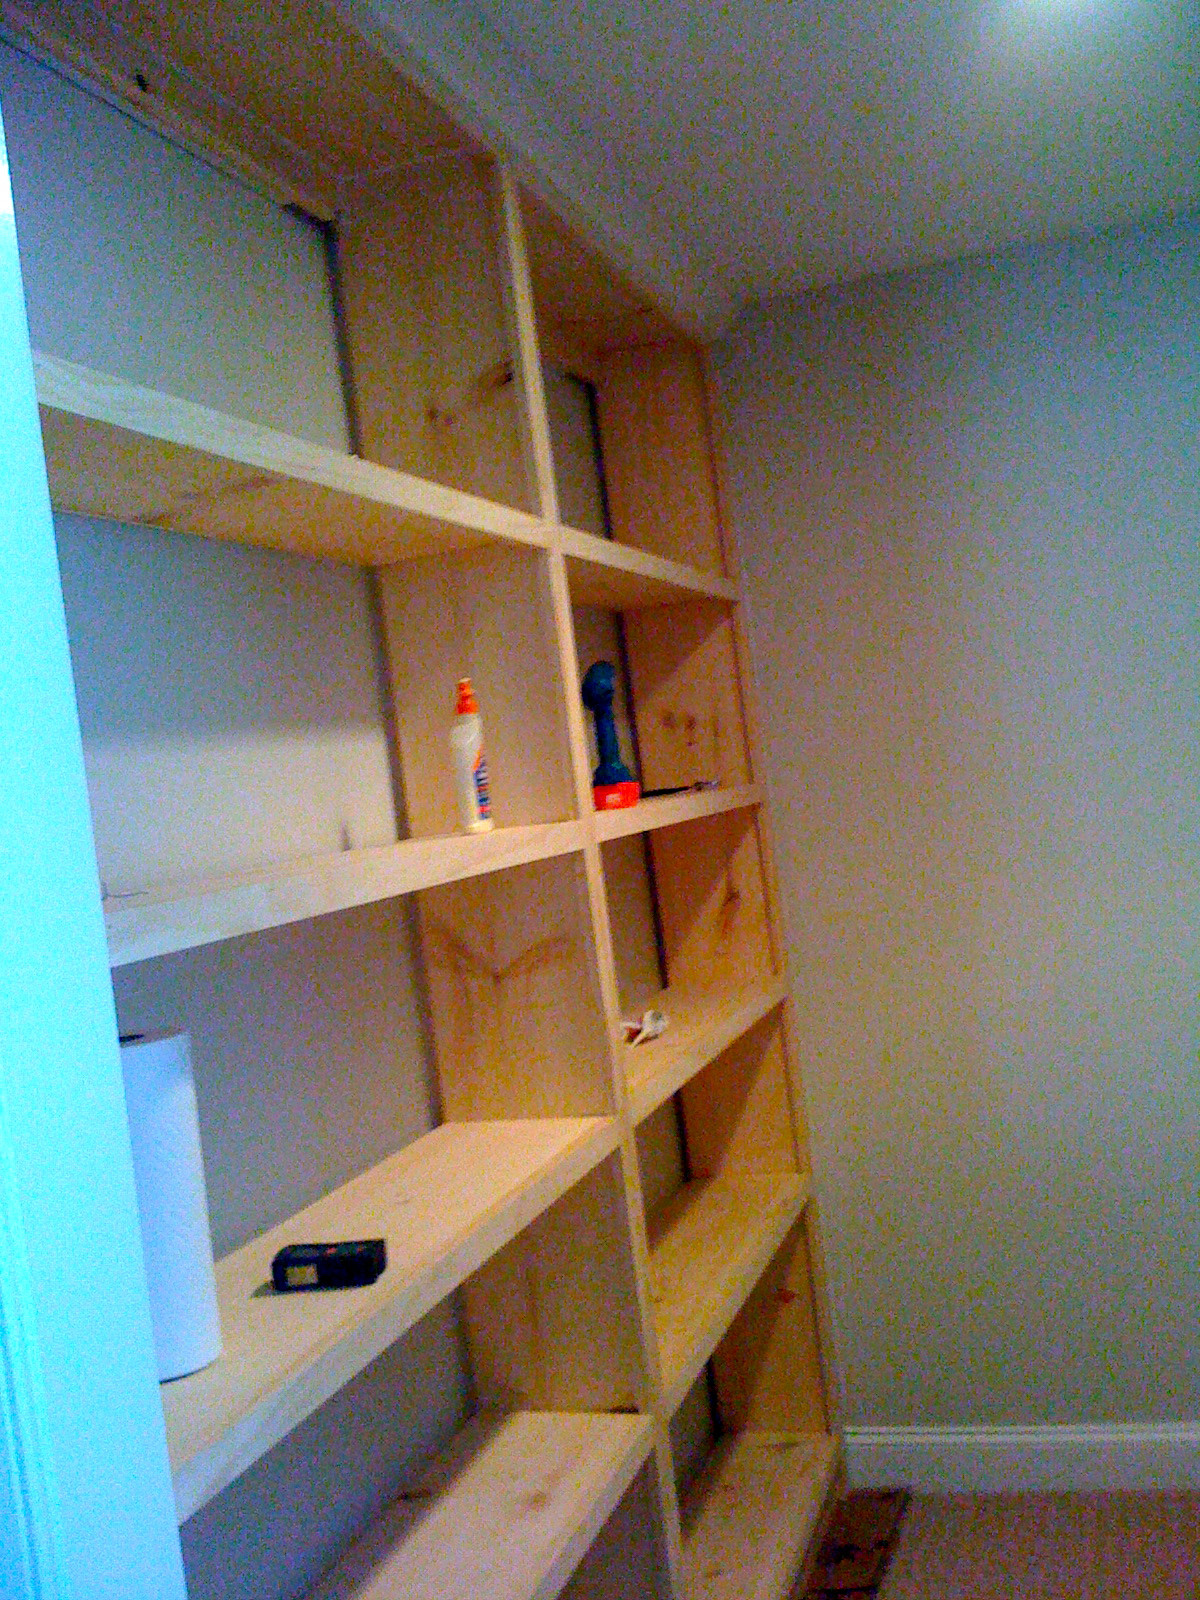 Best ideas about DIY Wall Bookshelf . Save or Pin Deux Maison Inspired to build DIY Built in Bookcase Now.